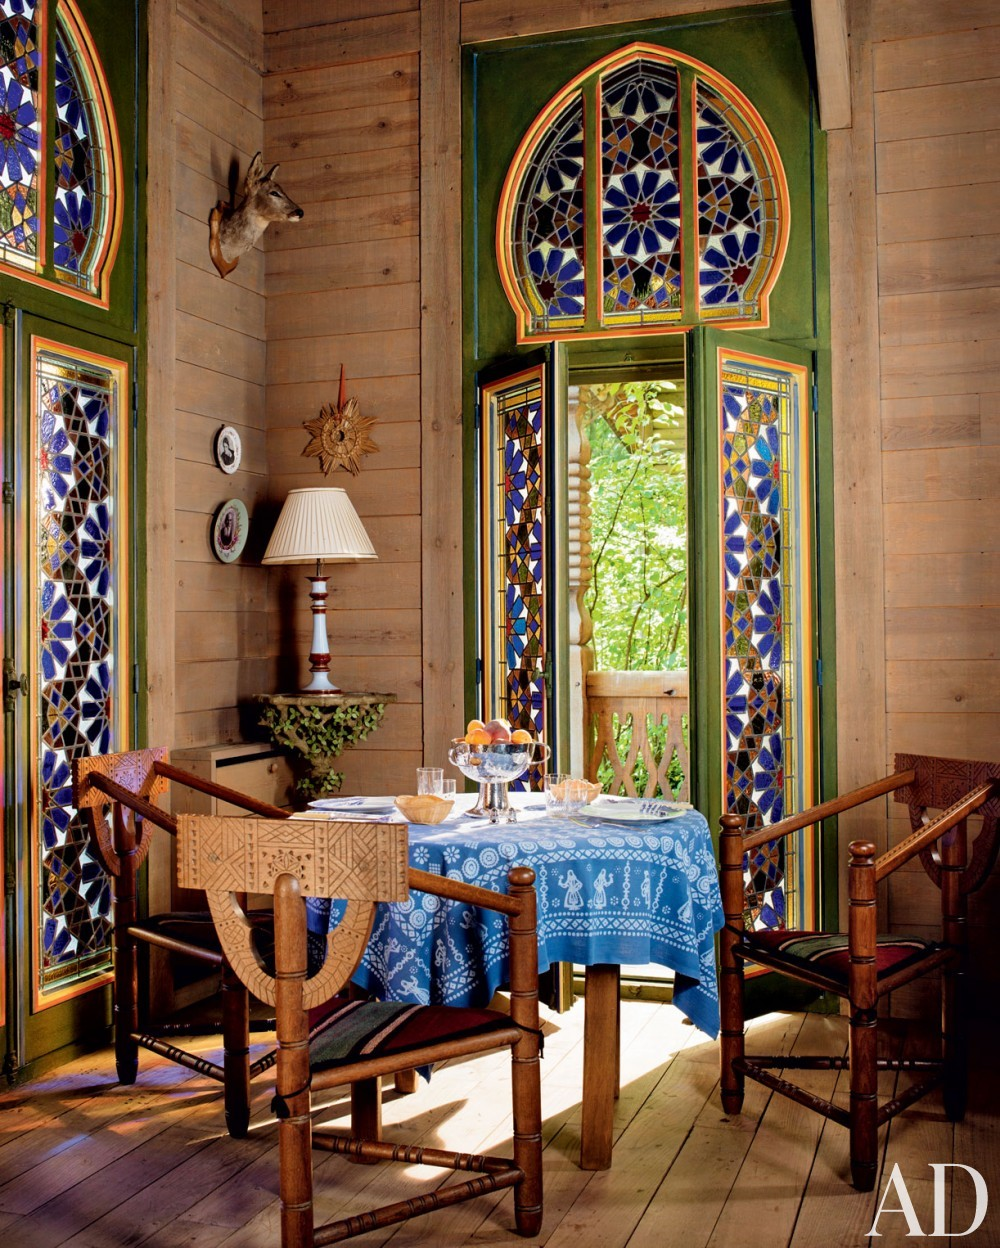 Exotic Dining Room by Jacques Grange and Jacques Grange in Normandy, France